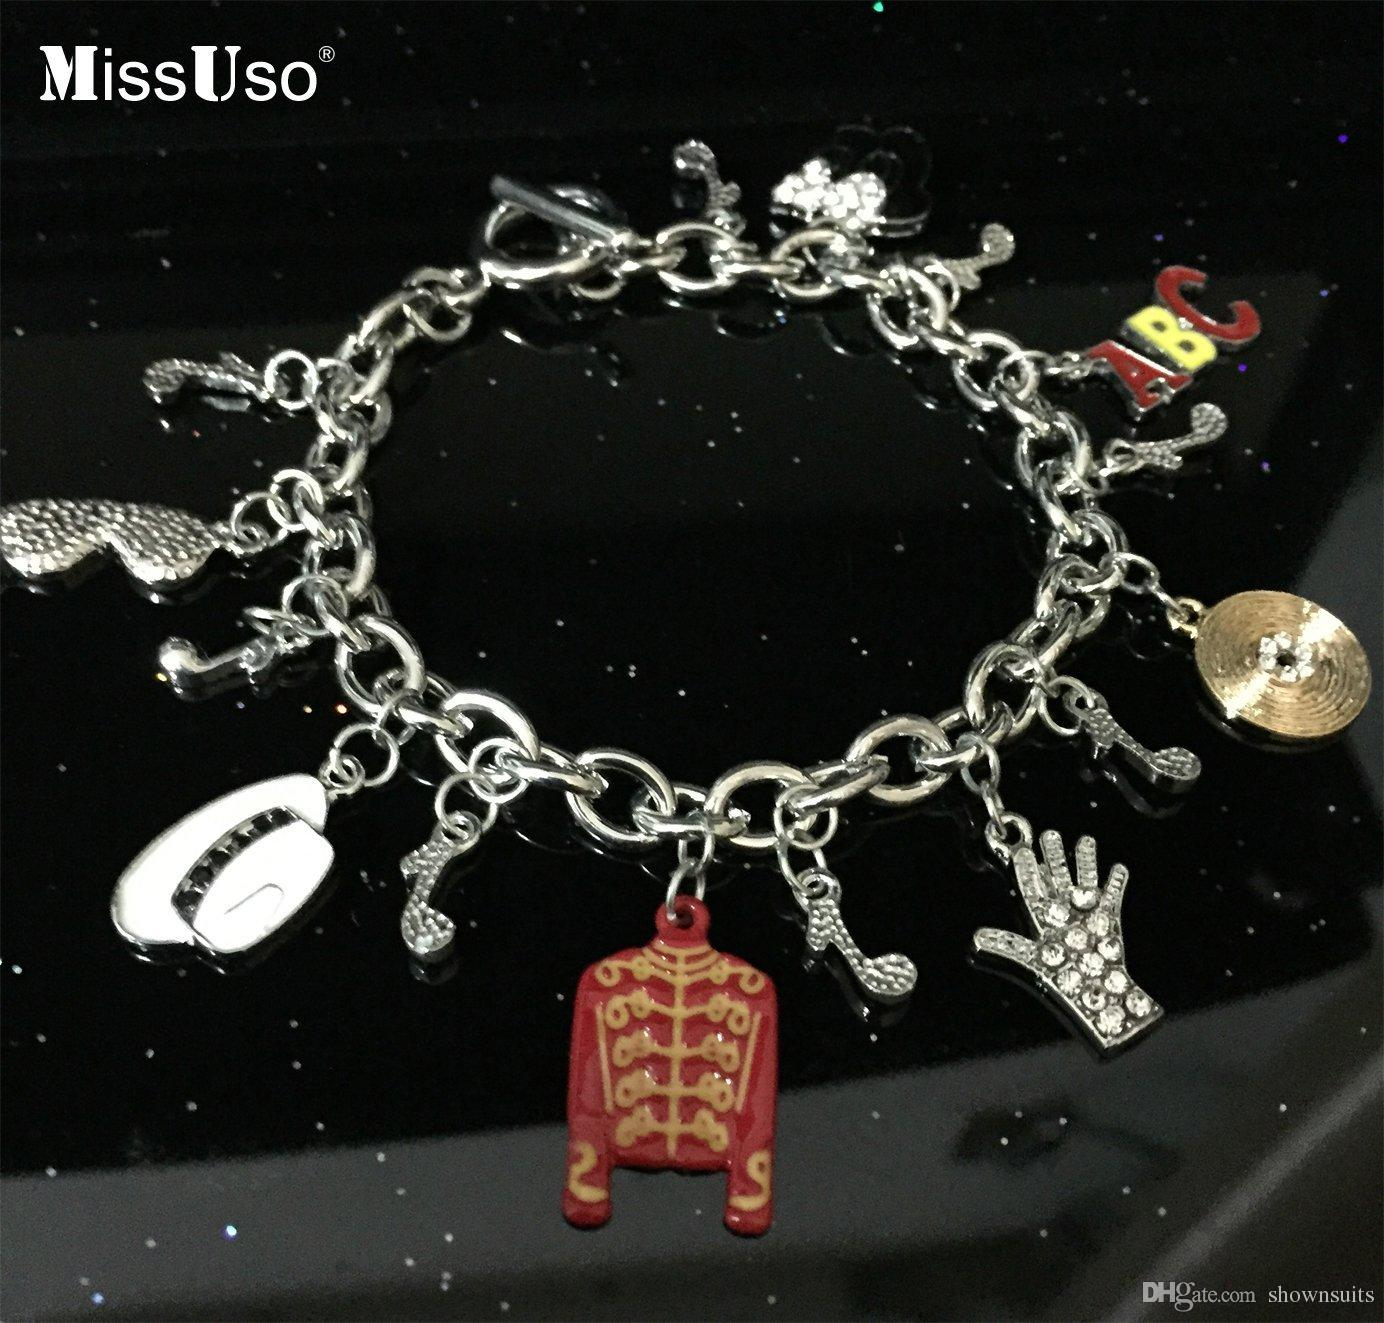 Missuso mj styles michael jackson bracelet memorial for Michael m collection